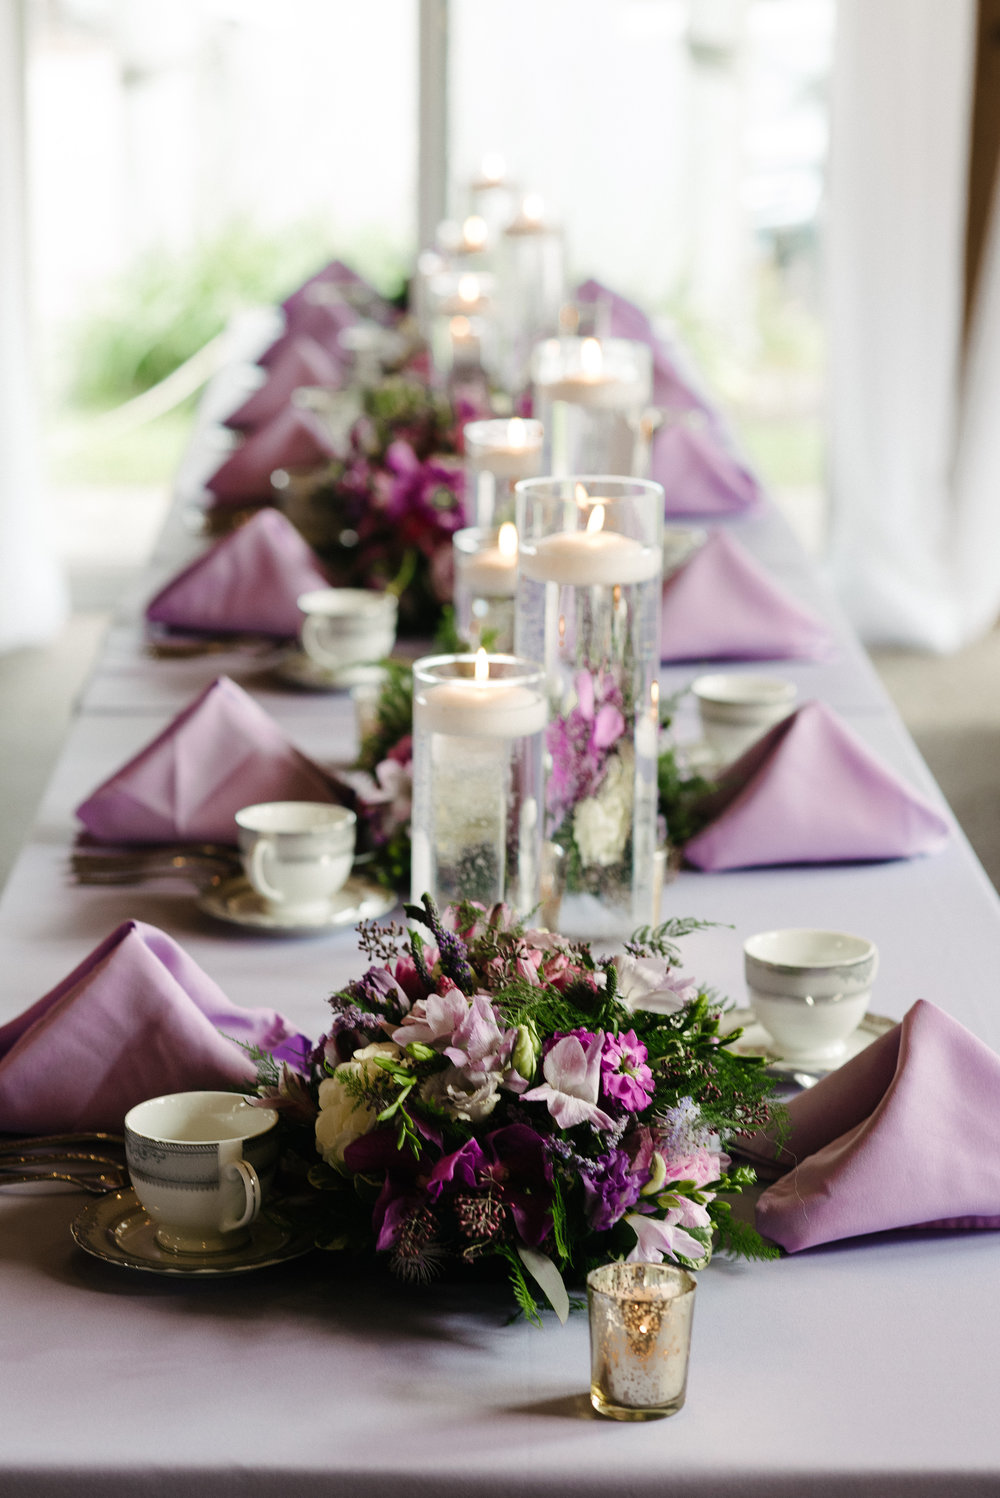 lavender table linen with matching napkins, hurricane vase floating candles |  Dillinger Studios Minneapolis Photographer | Mexican American fusion wedding | Sixpence Events & Planning Minnesota wedding planner .jpg